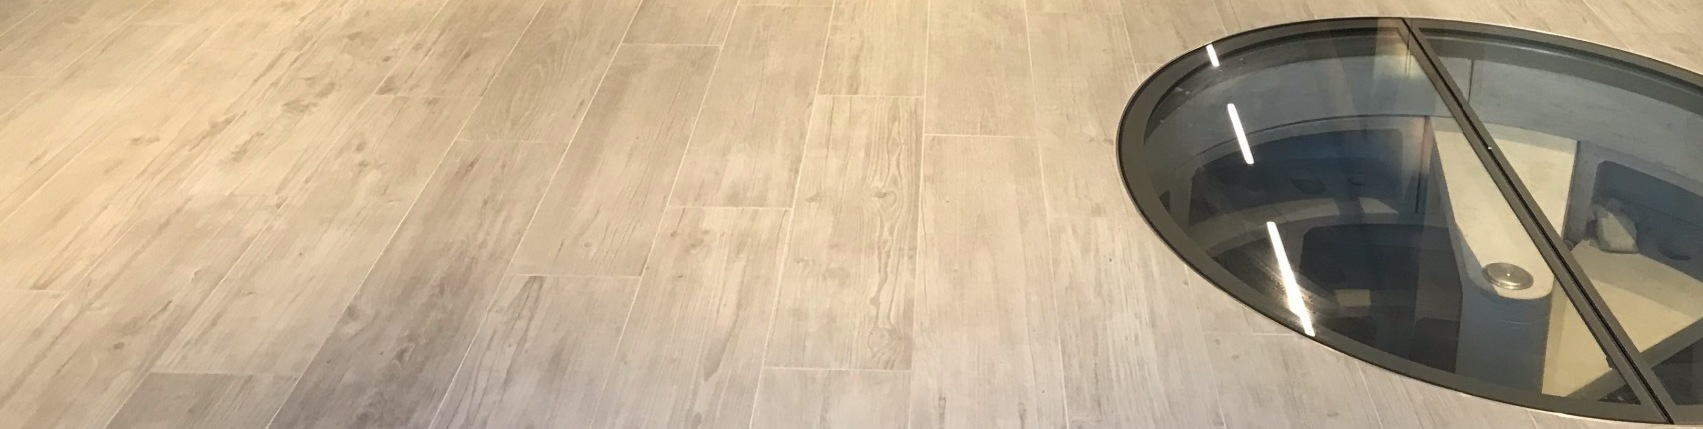 Tiling contractors in London